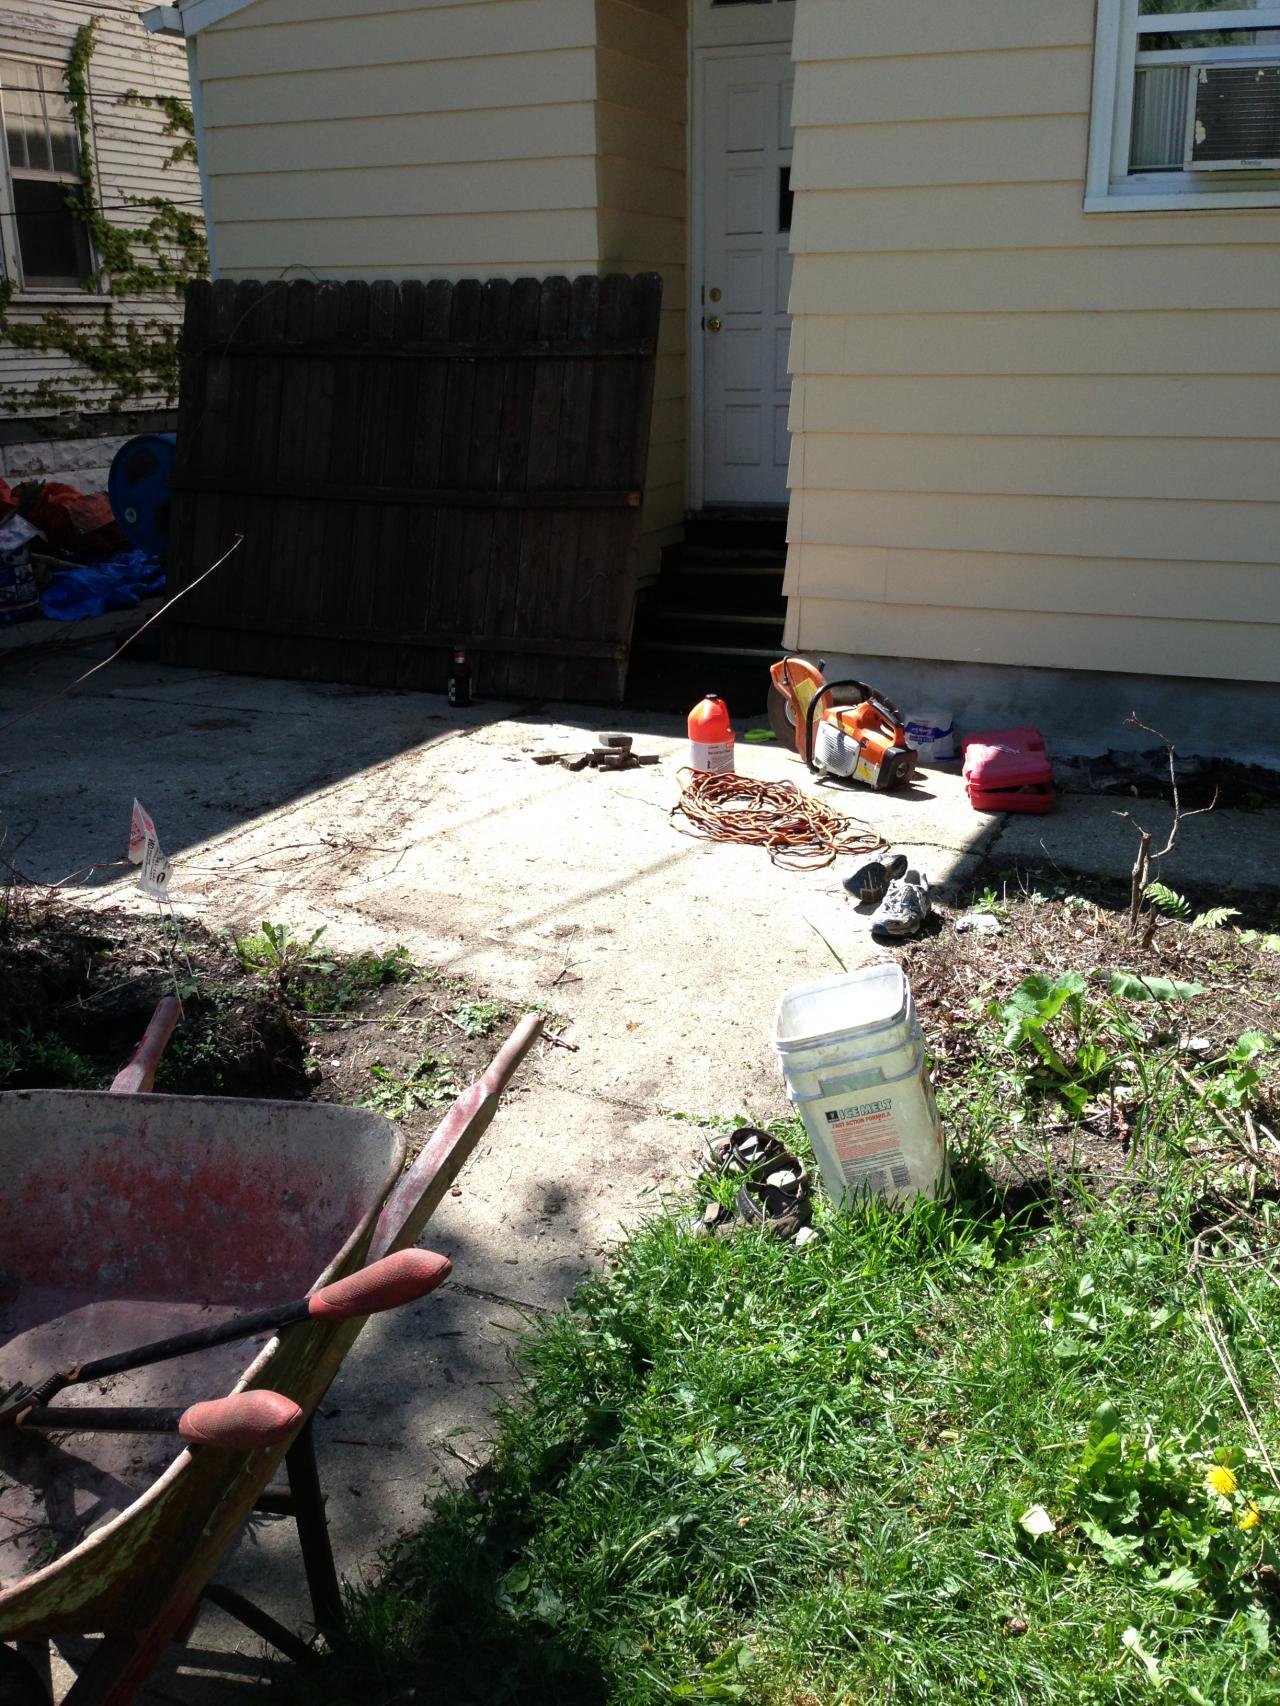 Reyes lawn landscaping co back yard renovation for Cleaning stained concrete patio